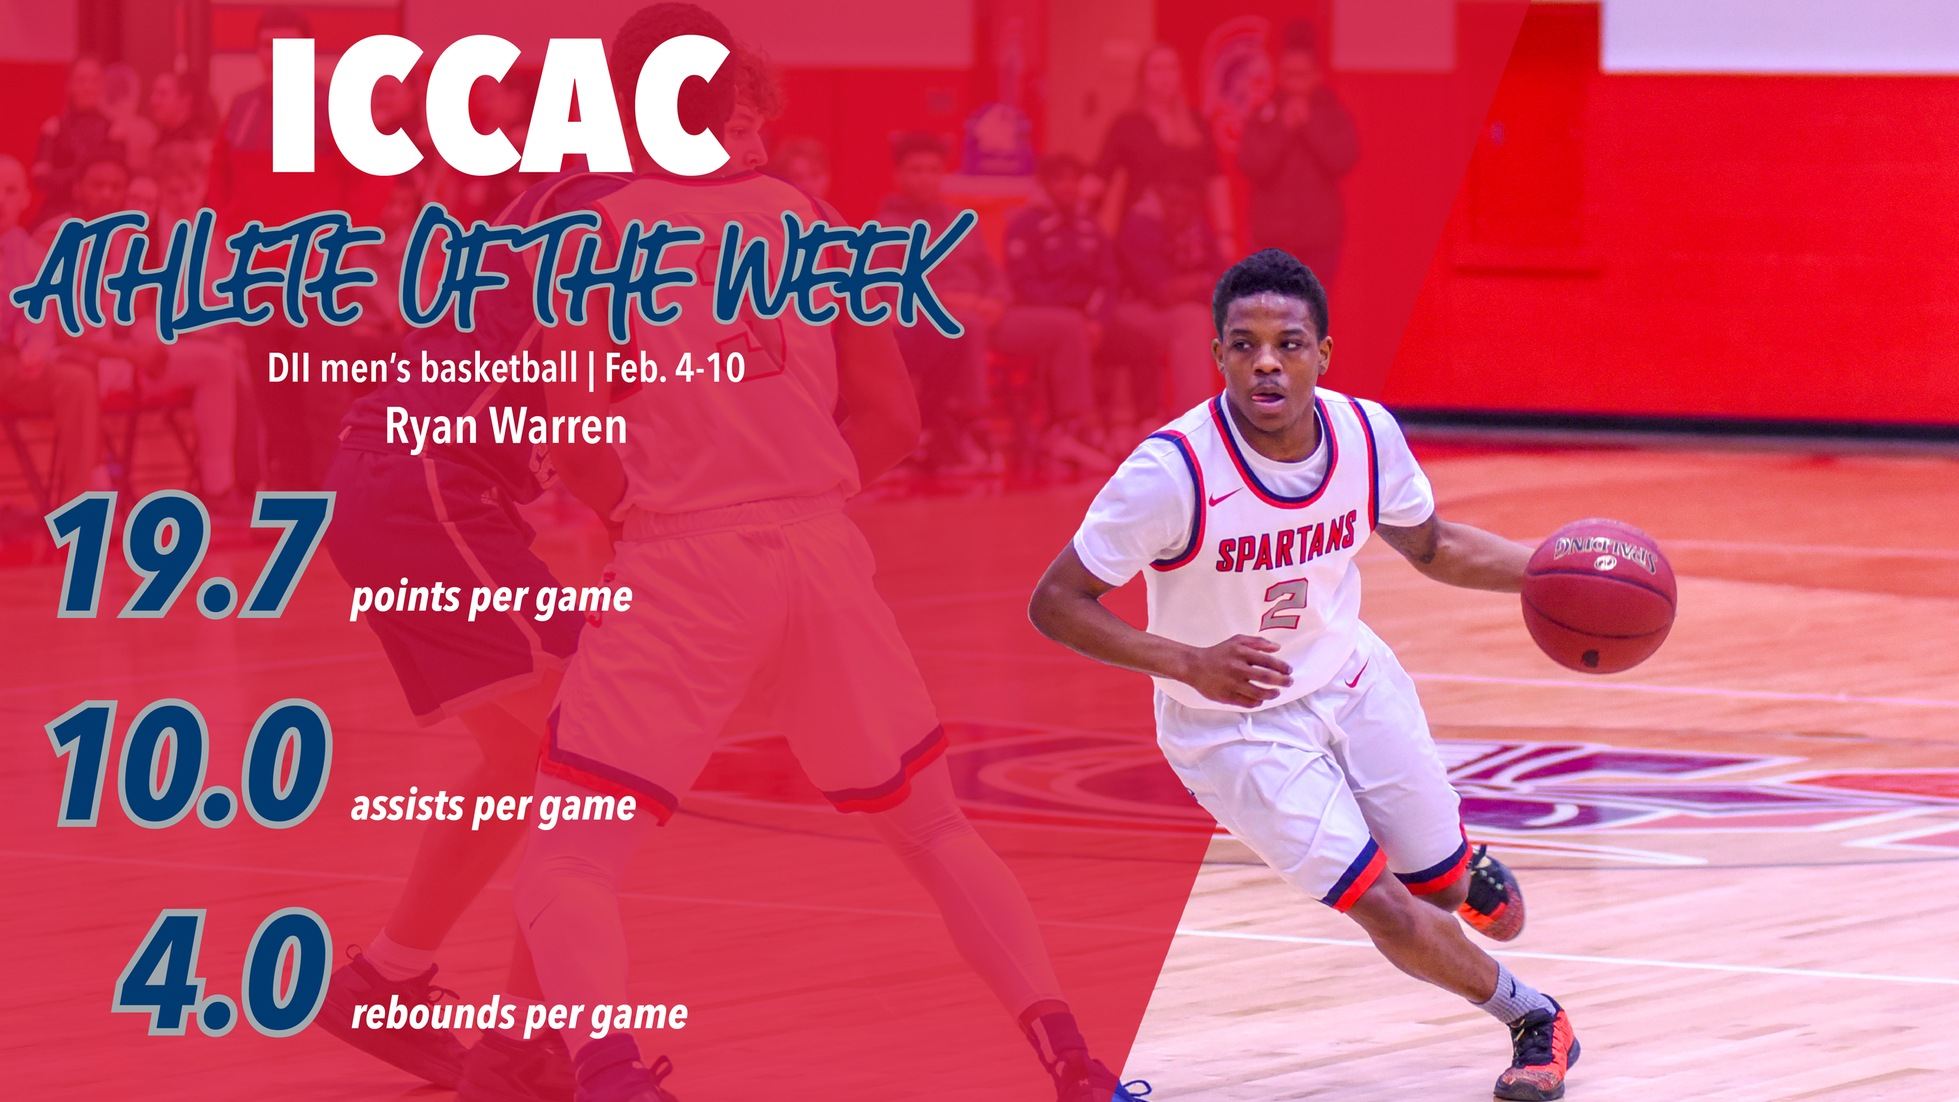 Southwestern sophomore Ryan Warren averaged 19.7 points, 10.0 assists and 4.0 rebounds per game over three games to earn ICCAC athlete of the week honors for DII men's basketball for the week of Feb. 4-10.